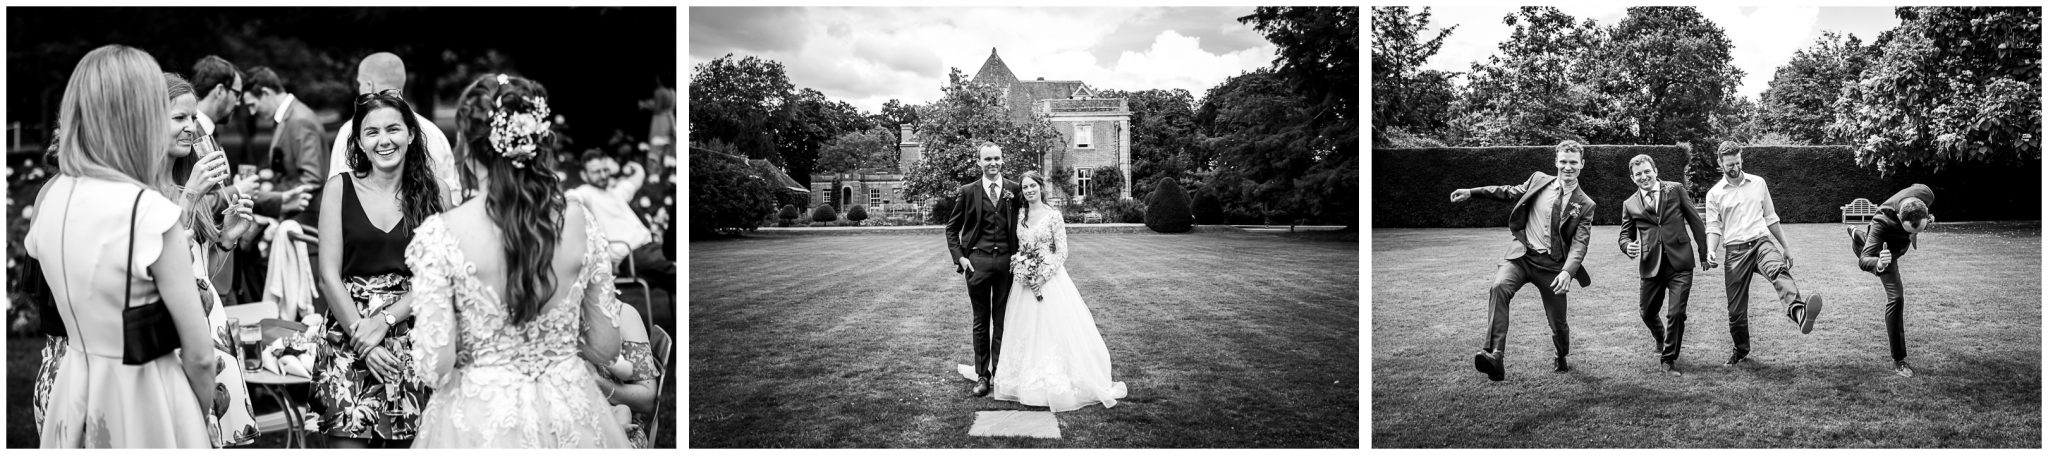 Bride and groom posed in front of house